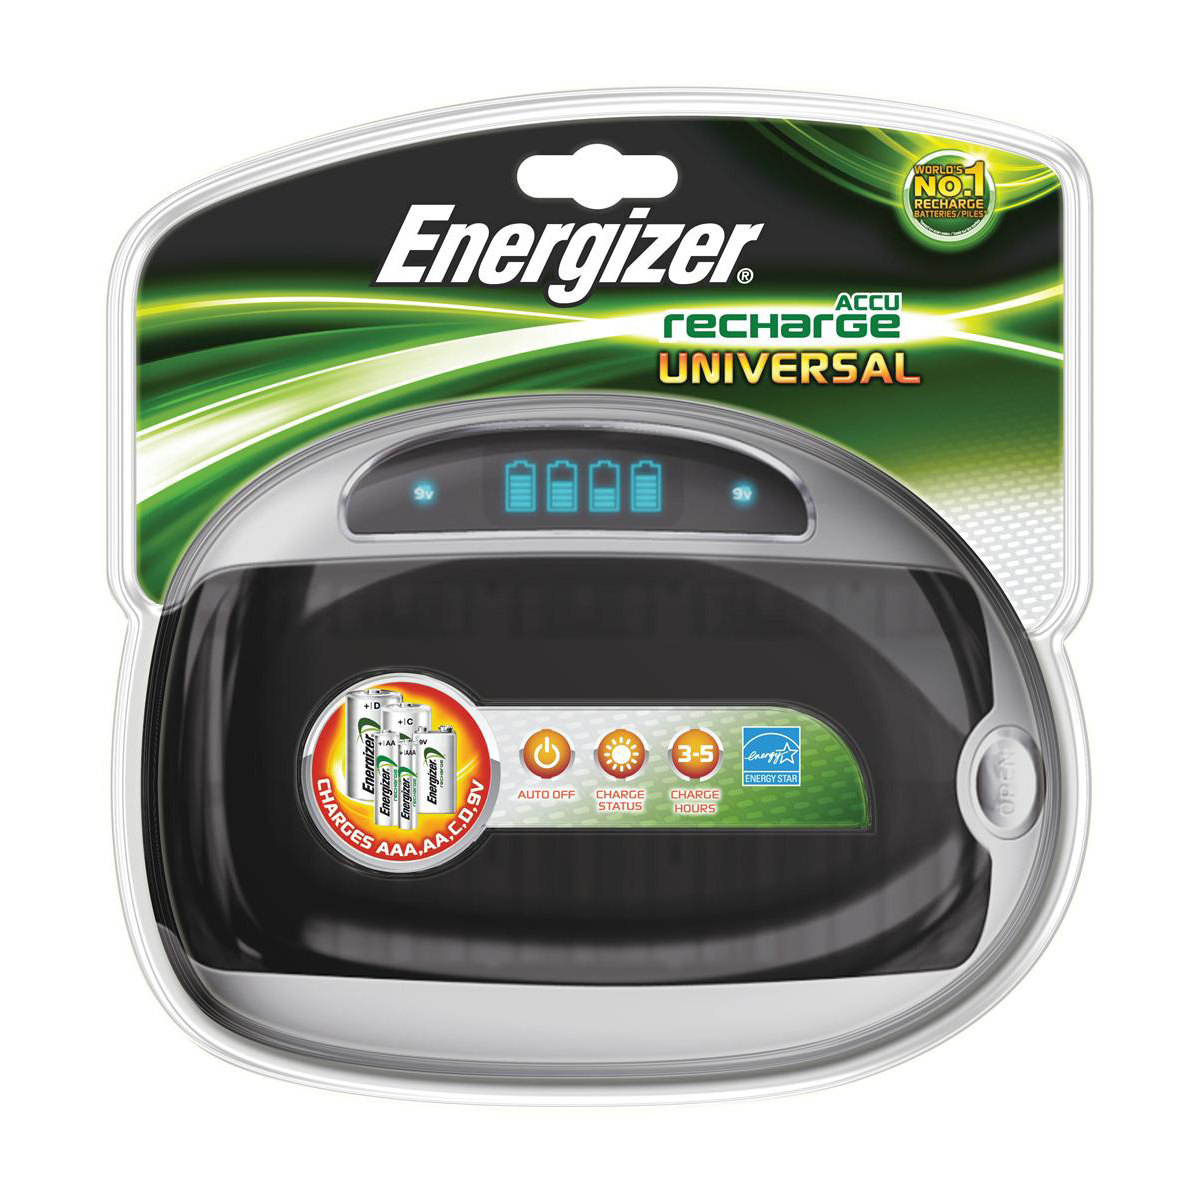 Energizer Universal Battery Charger CHEUF with Smart LED 2-5Hrs Time for AAA AA C D 9V Ref 629874